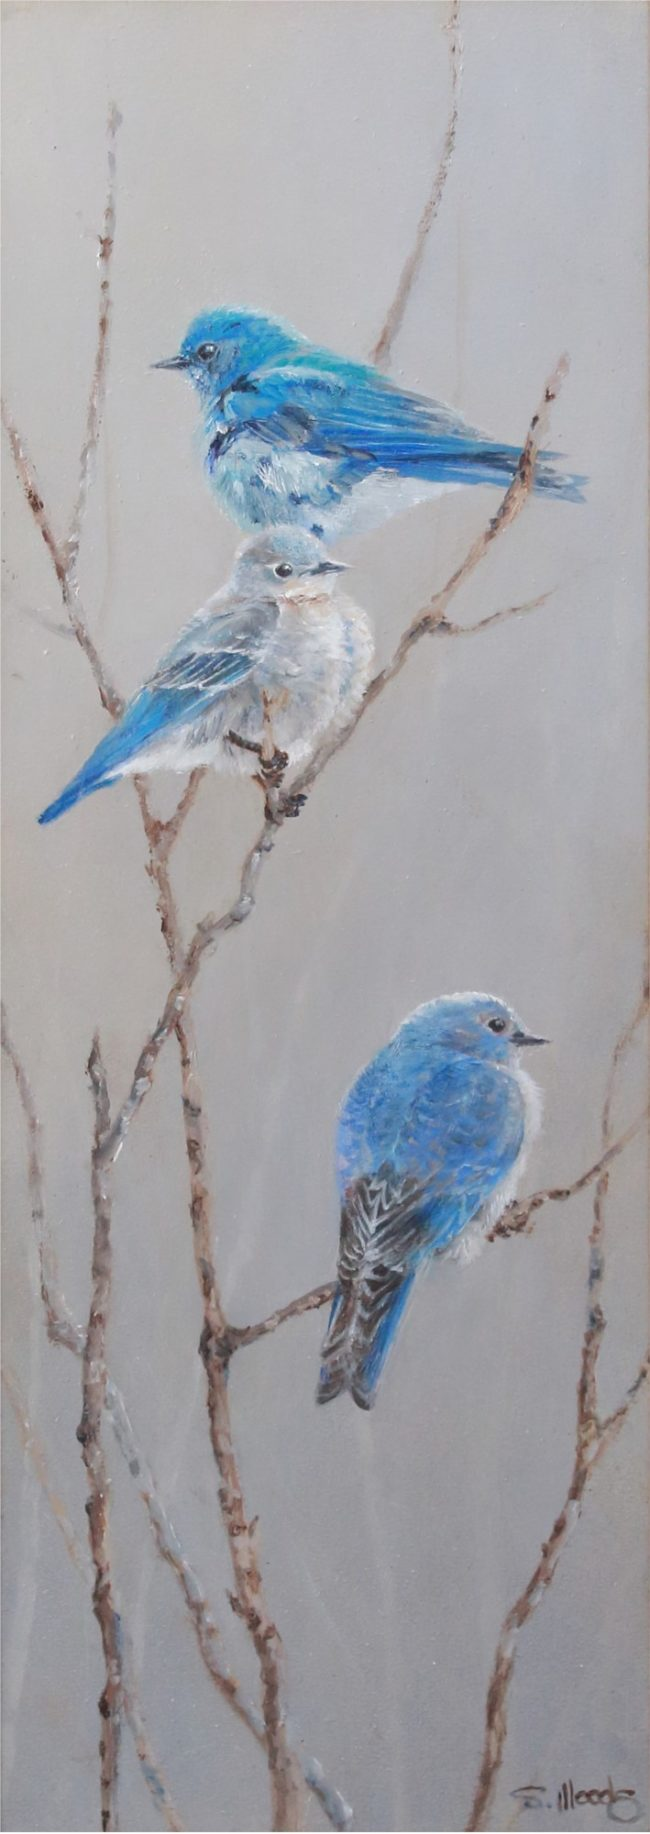 Sarah Woods Painting Tangled Up in Blue Oil on Board